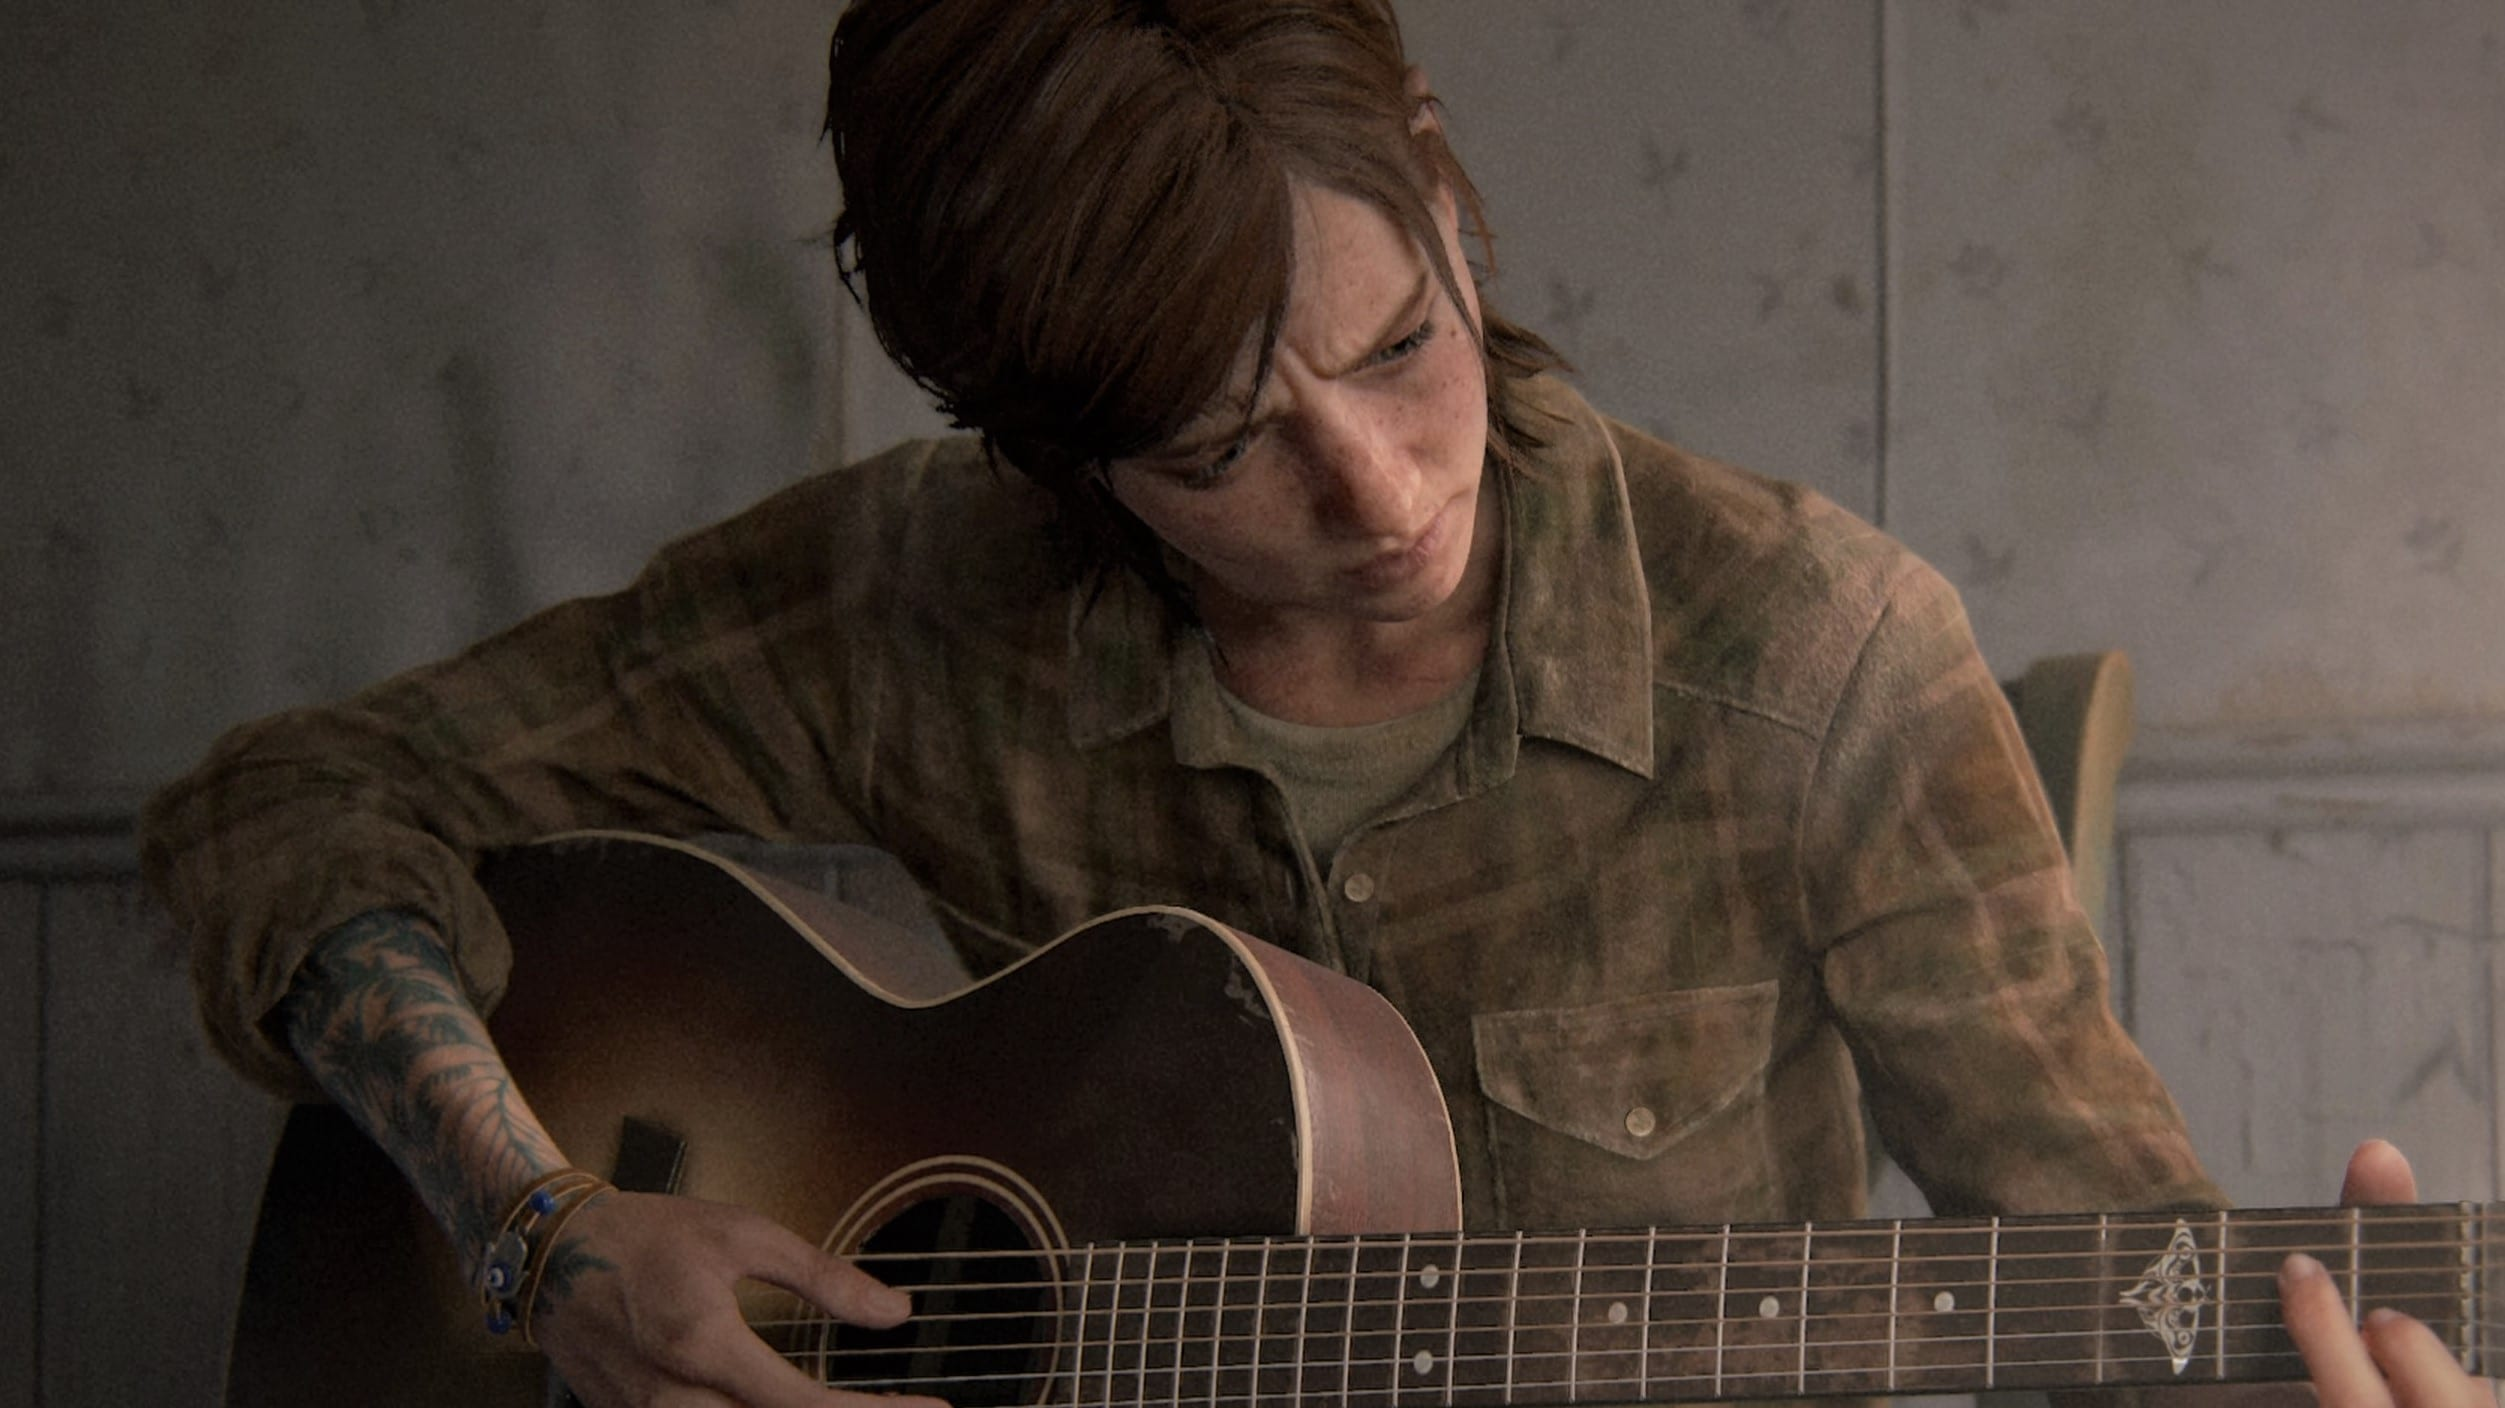 The Last of Us 2 Ellie Ende guitare